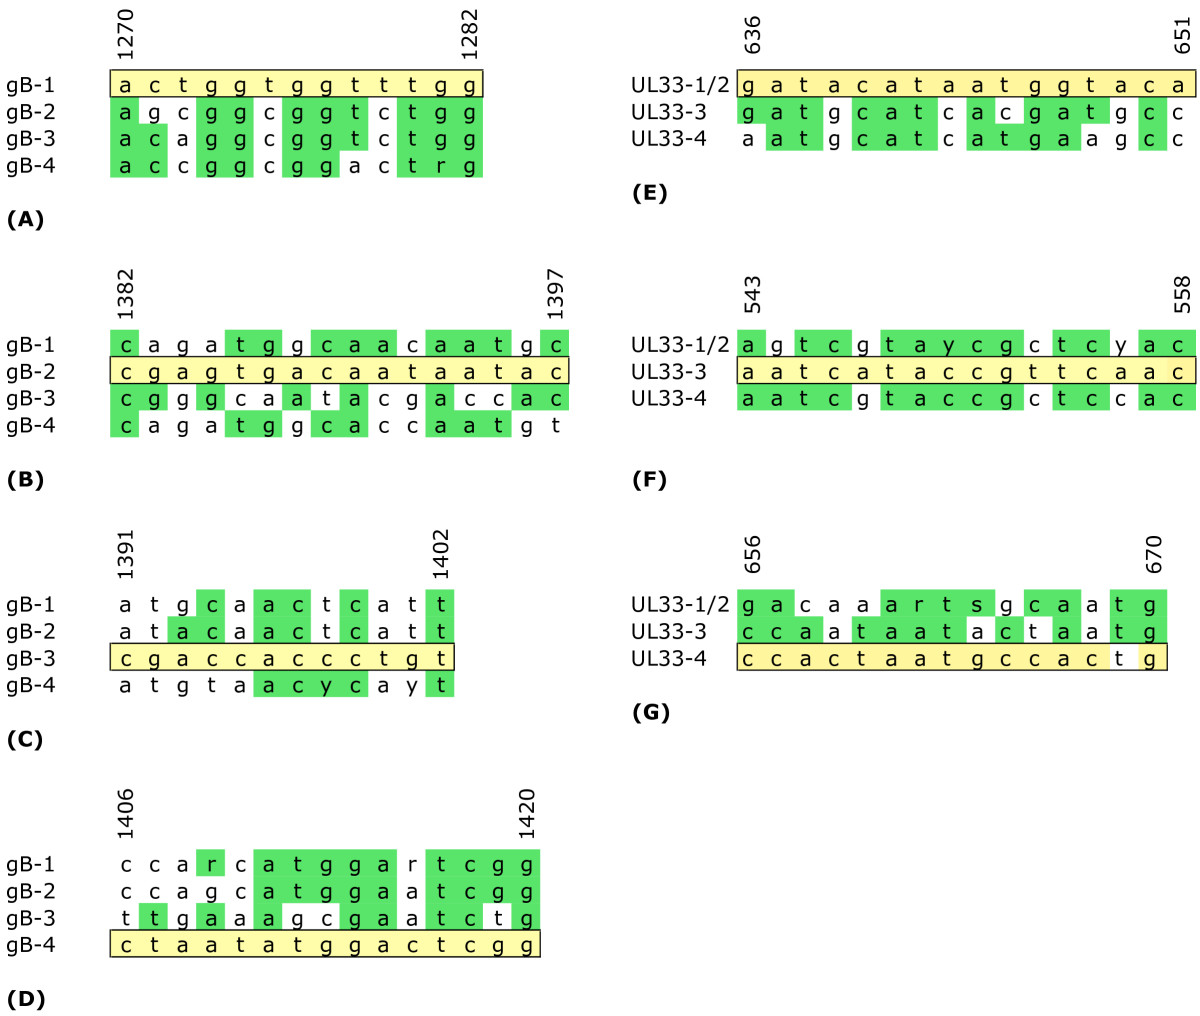 http://static-content.springer.com/image/art%3A10.1186%2F1743-422X-6-210/MediaObjects/12985_2009_Article_724_Fig2_HTML.jpg